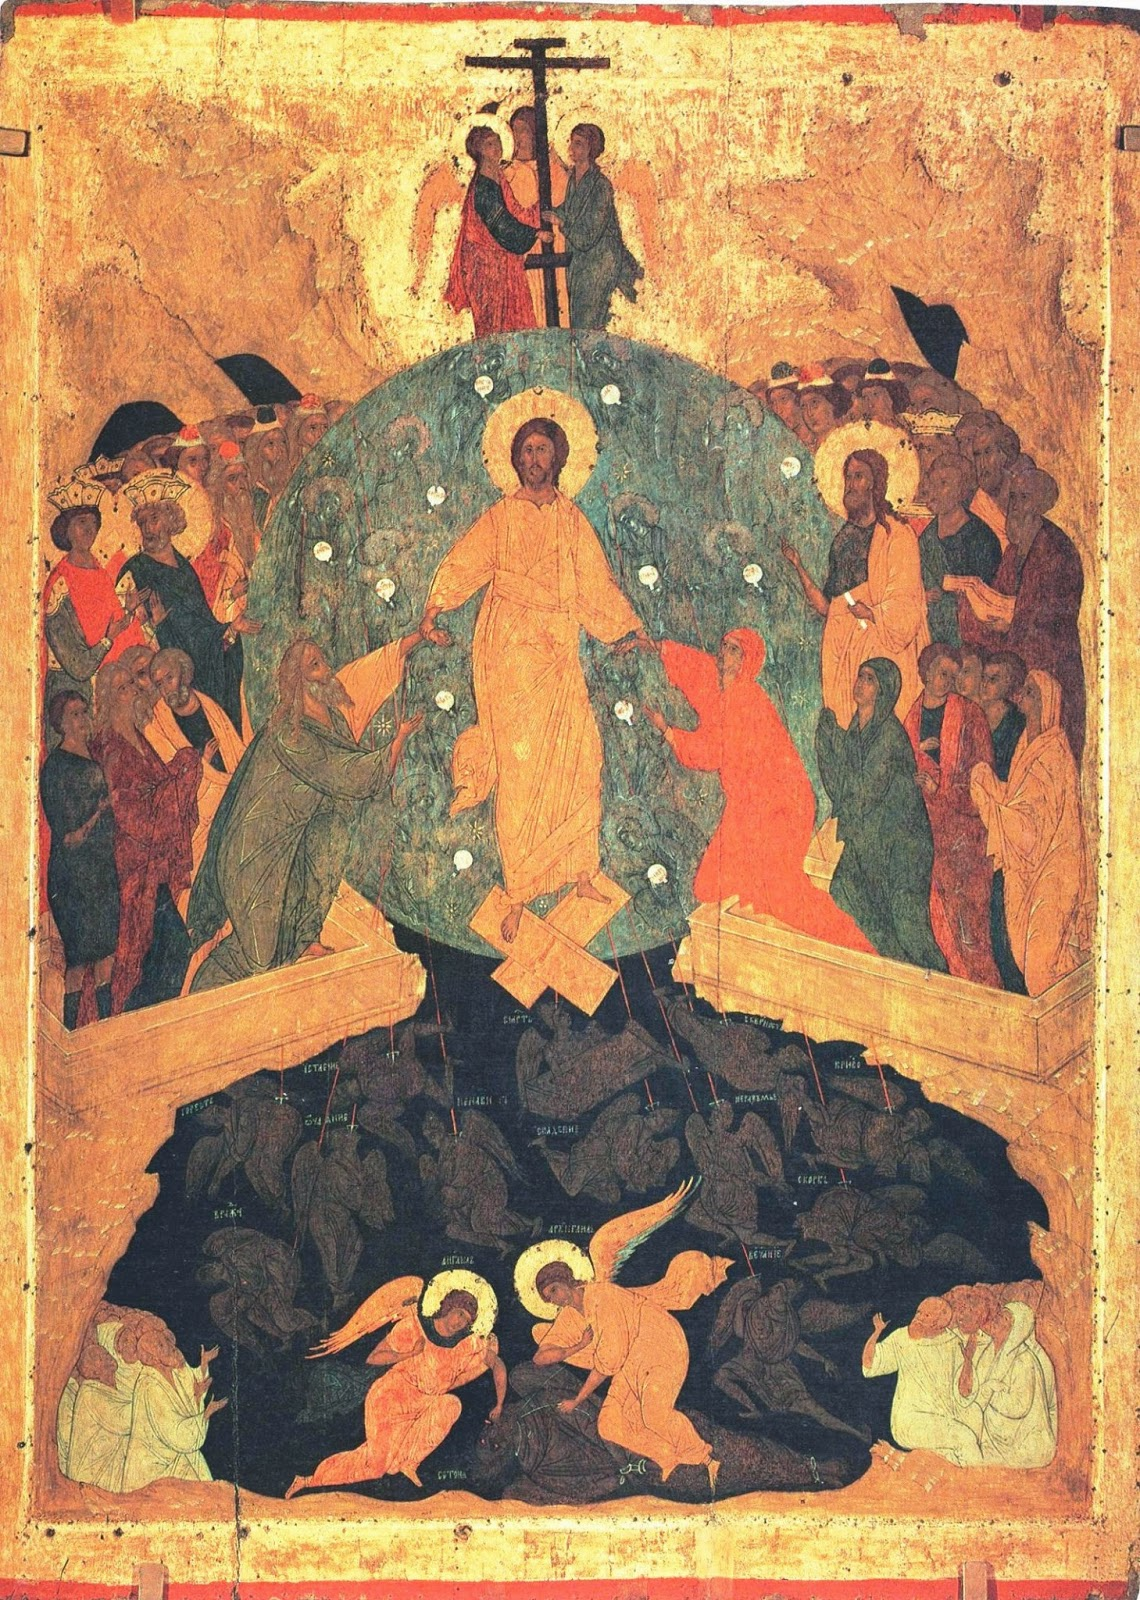 """Descent into Hell by Dionisius and workshop (Ferapontov monastery)"" by Moscow school, Dionysius and his workshop - File:Descent into hell-Russian Museum.jpg. Licensed under Public Domain via Wikimedia Commons - http://commons.wikimedia.org/wiki/File:Descent_into_Hell_by_Dionisius_and_workshop_(Ferapontov_monastery).jpg#/media/File:Descent_into_Hell_by_Dionisius_and_workshop_(Ferapontov_monastery).jpg"